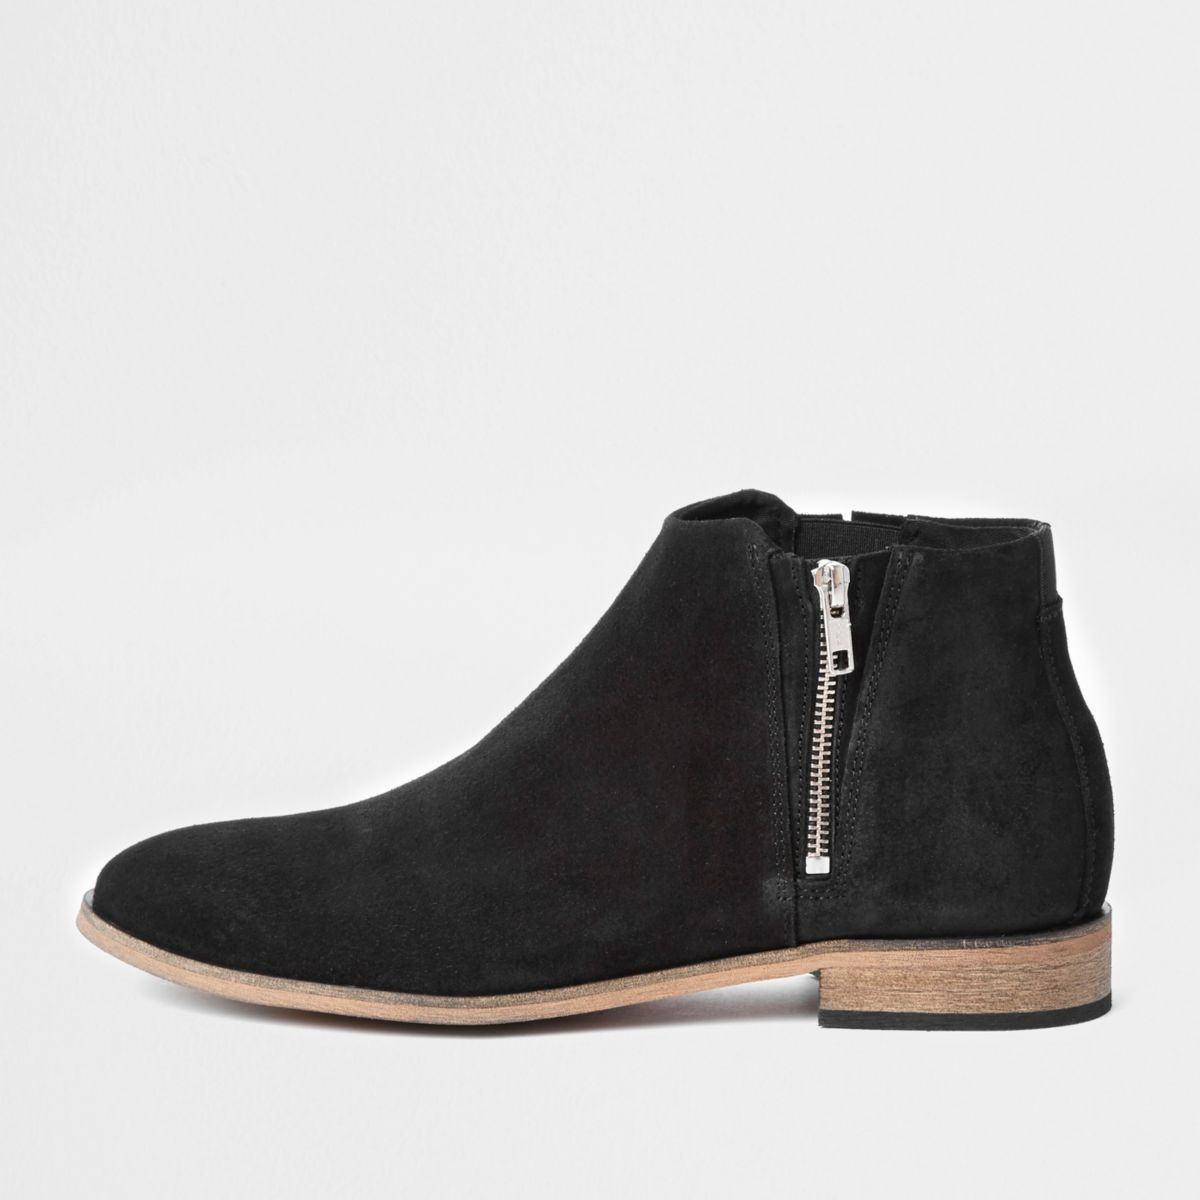 Black Suede Zip Chelsea Boots by River Island